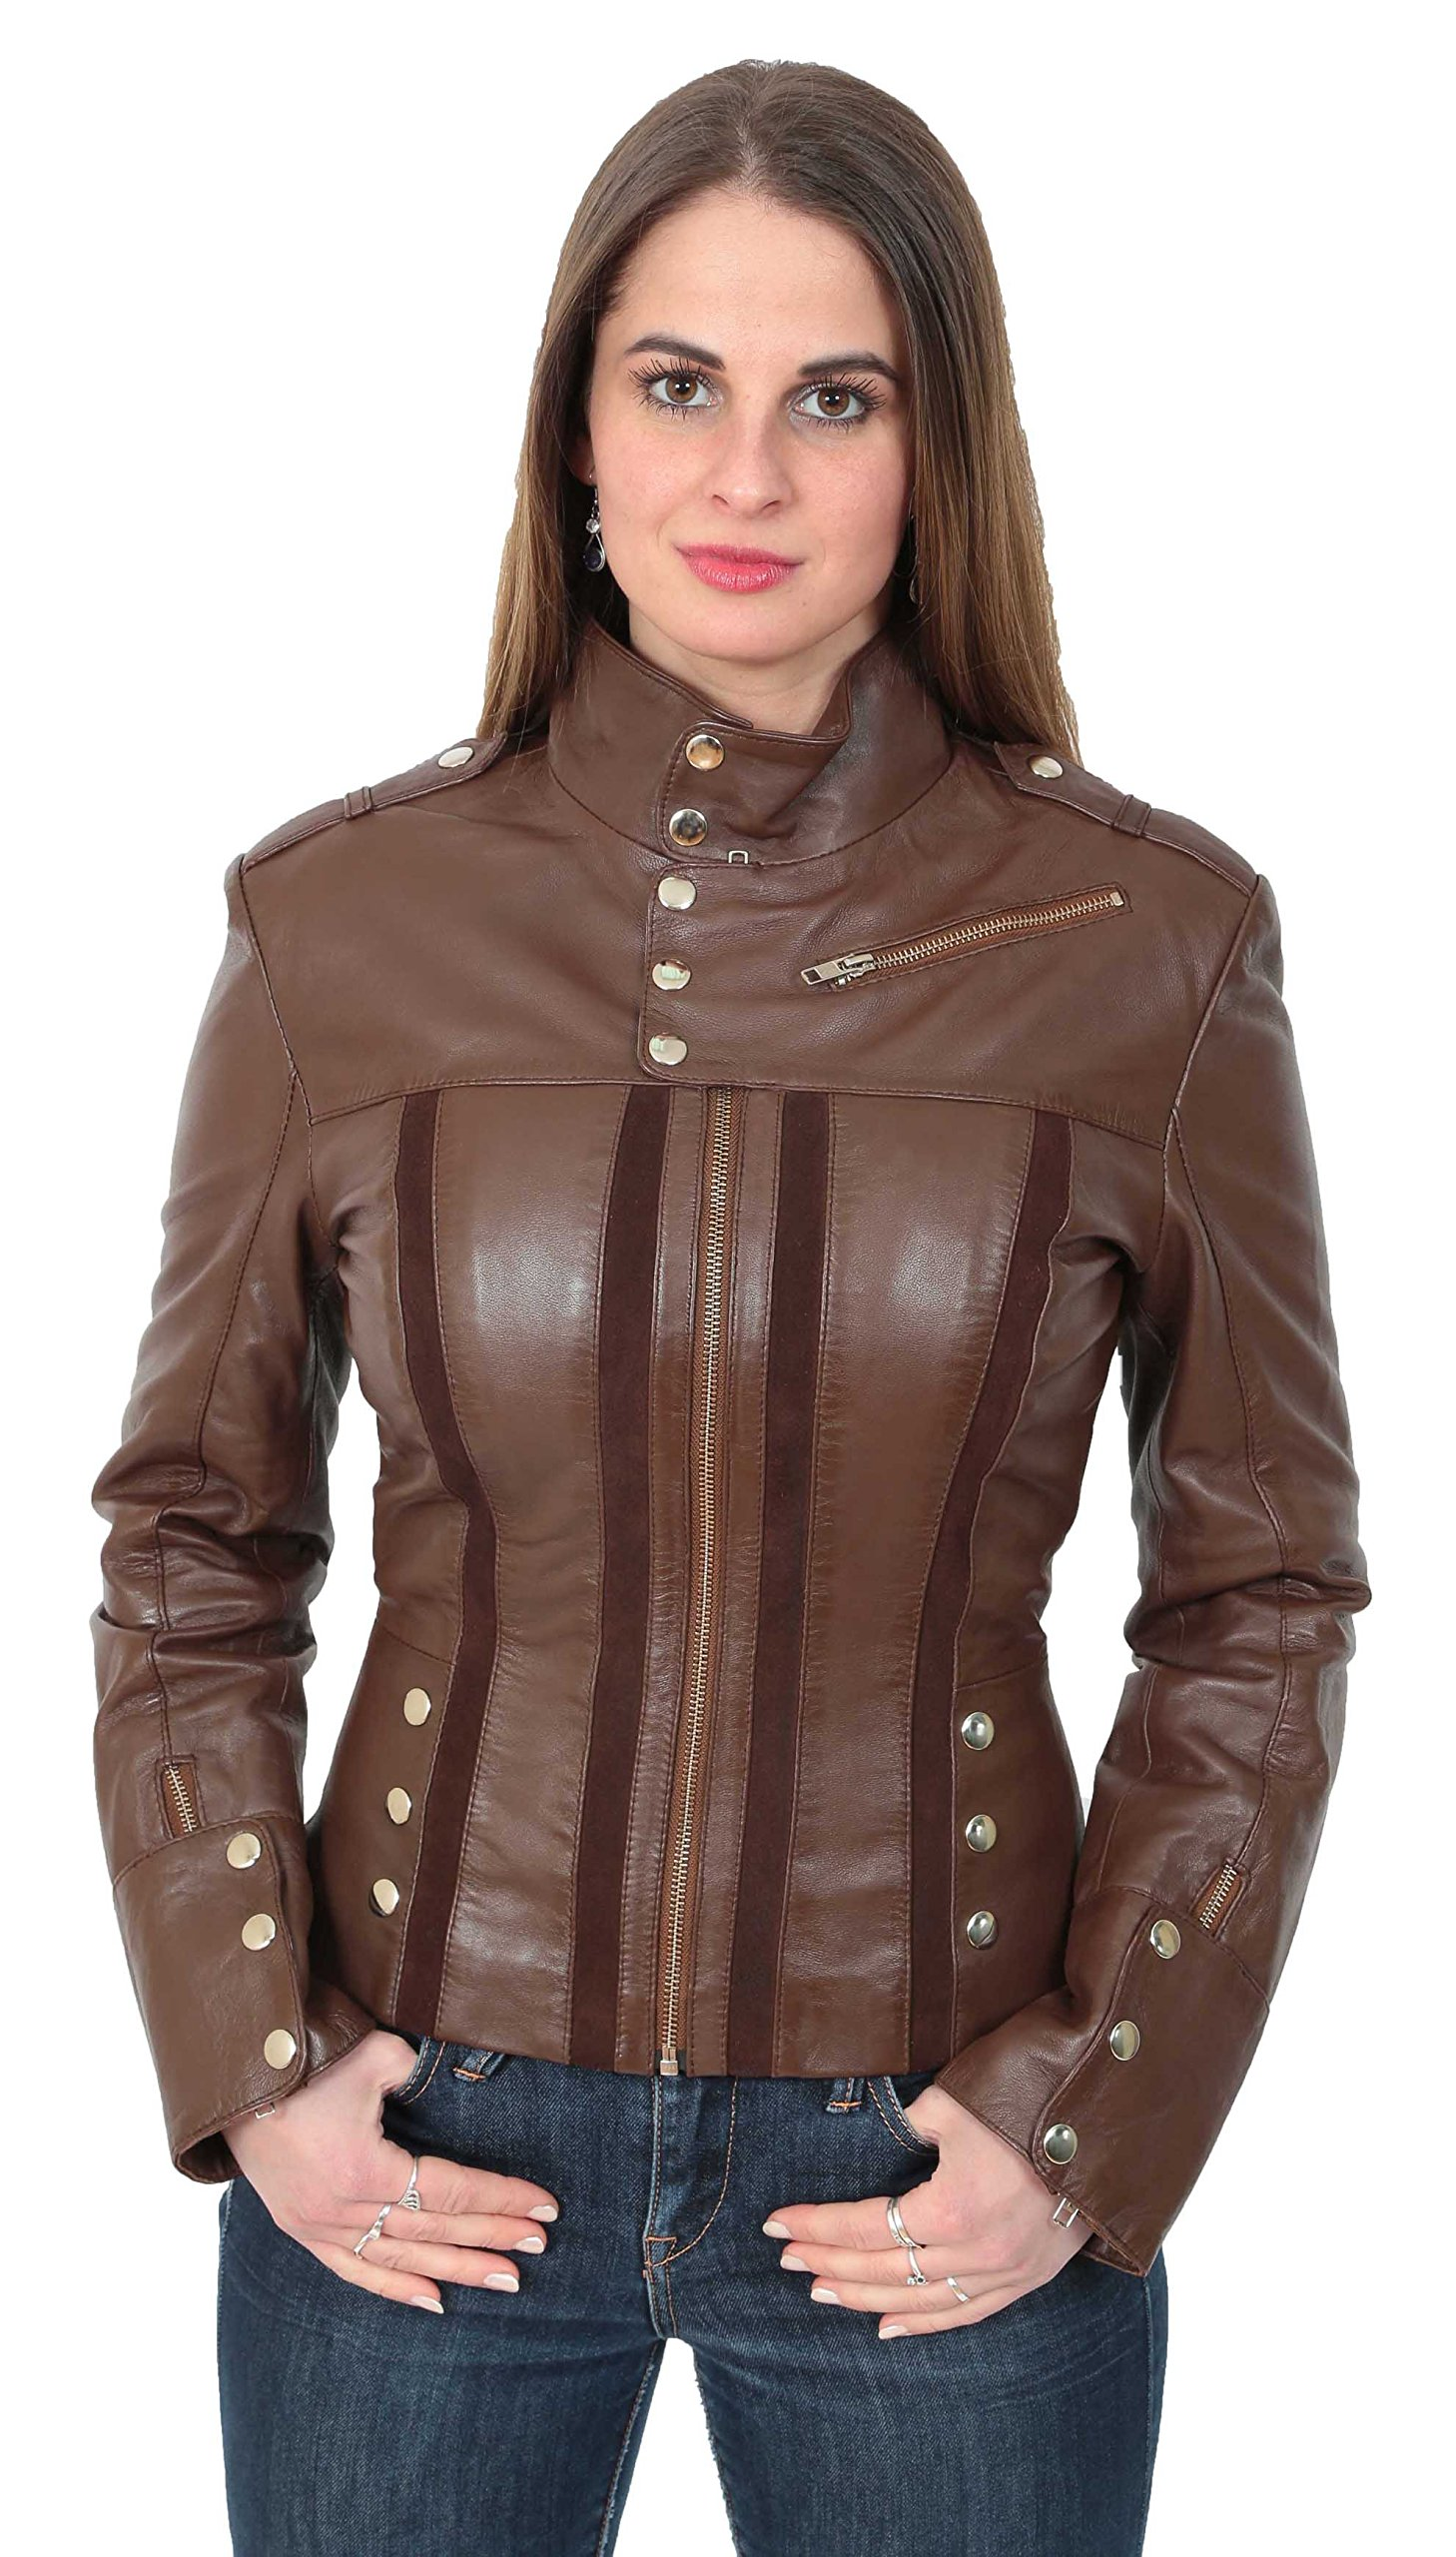 Womens Slim Fit Biker Style Brown Real Leather Jacket Studded Suede Feature Lily (X-Large) by A1 FASHION GOODS